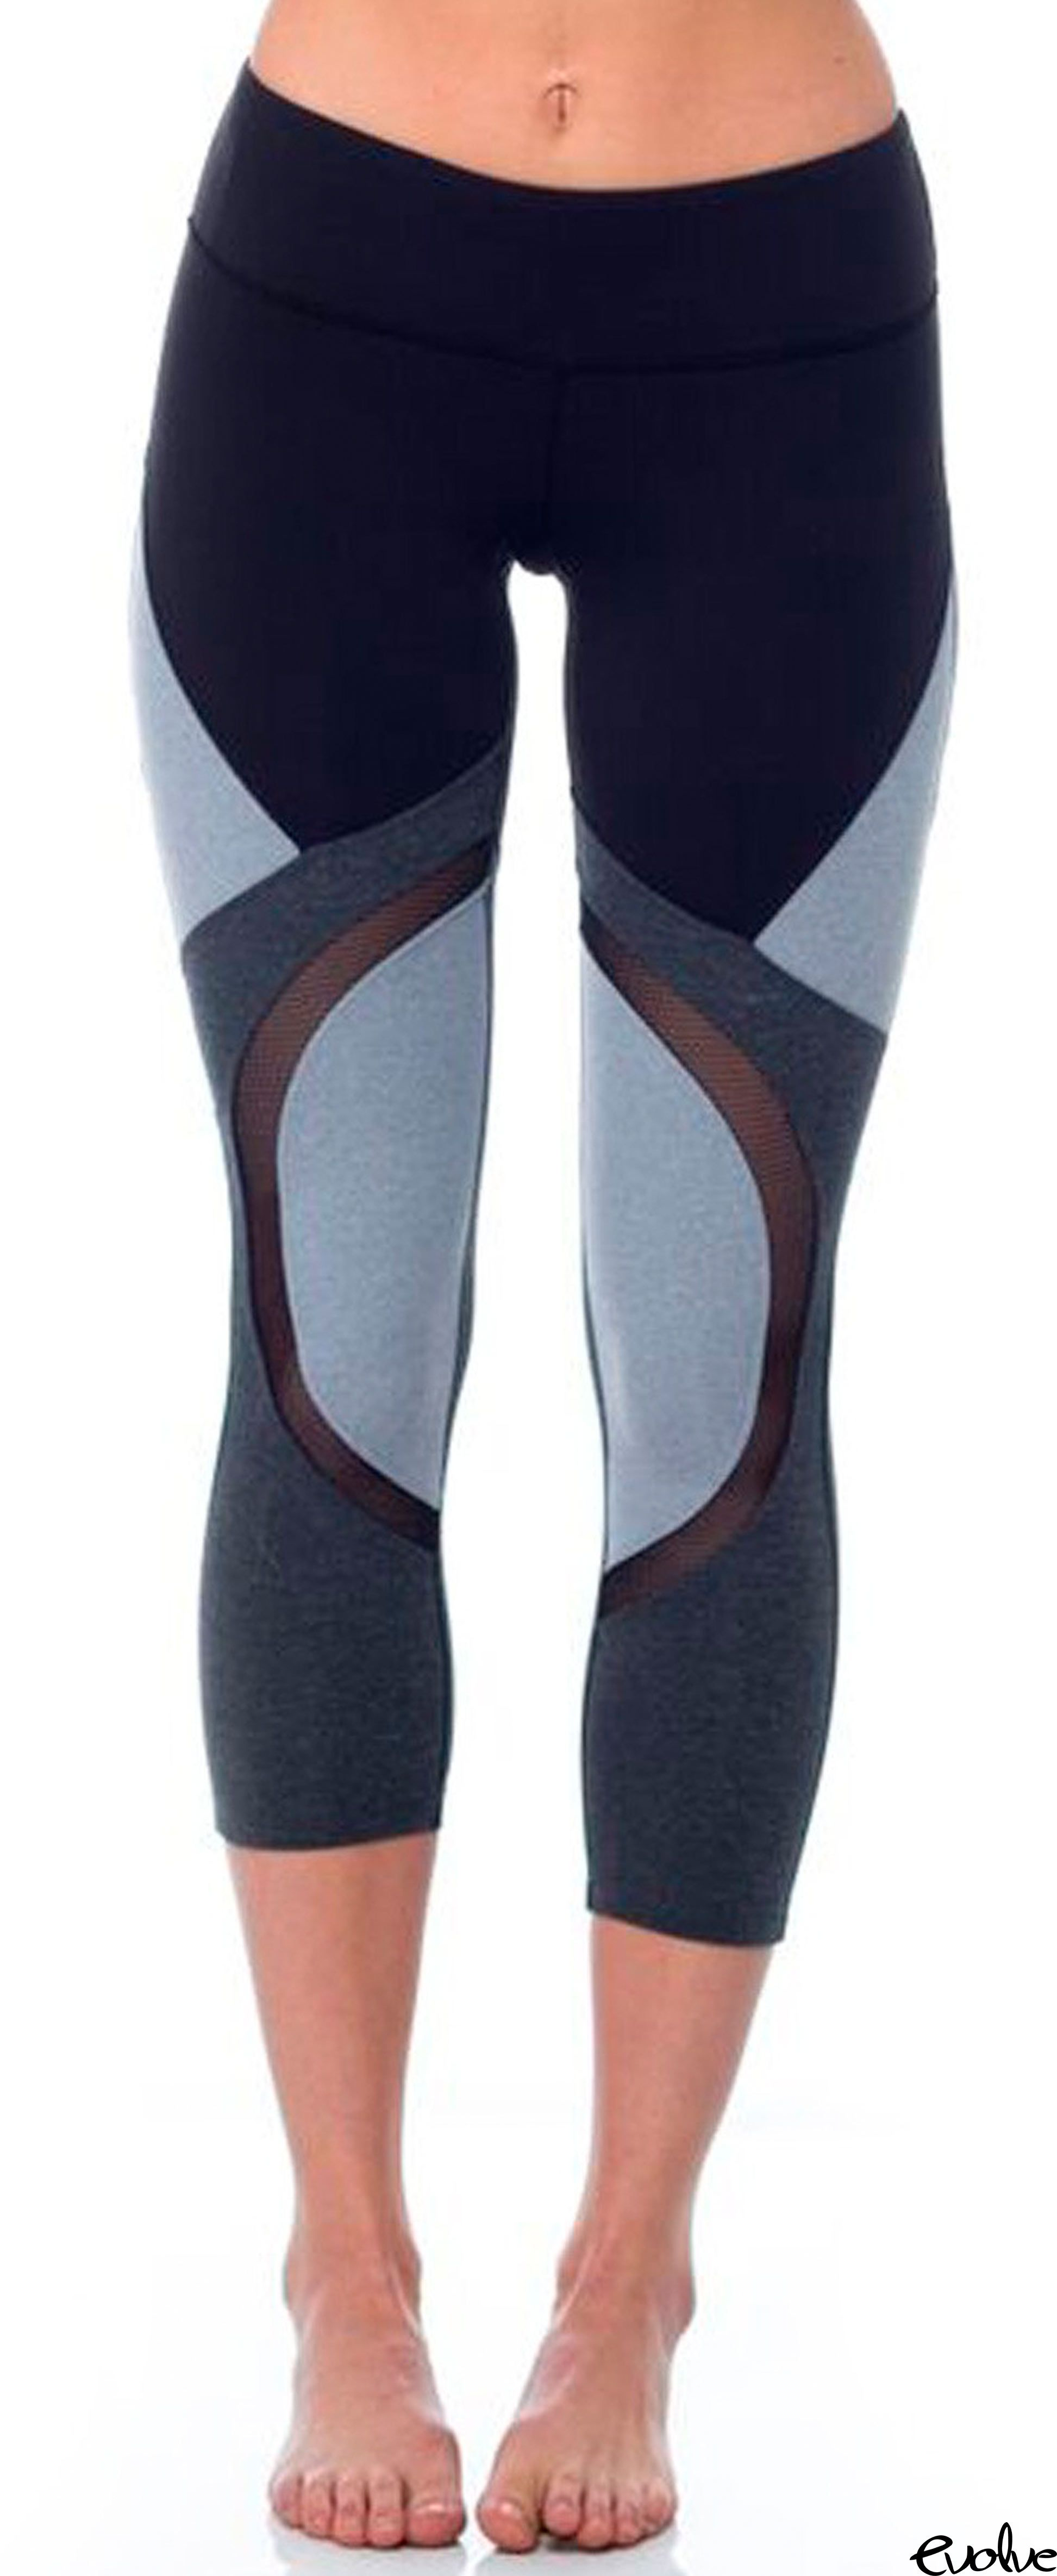 fe1d150f37 Ditch the solid colors for color block detailing with the Division Capri  from Splits59. Shop now at www.evolvefitwear.com.